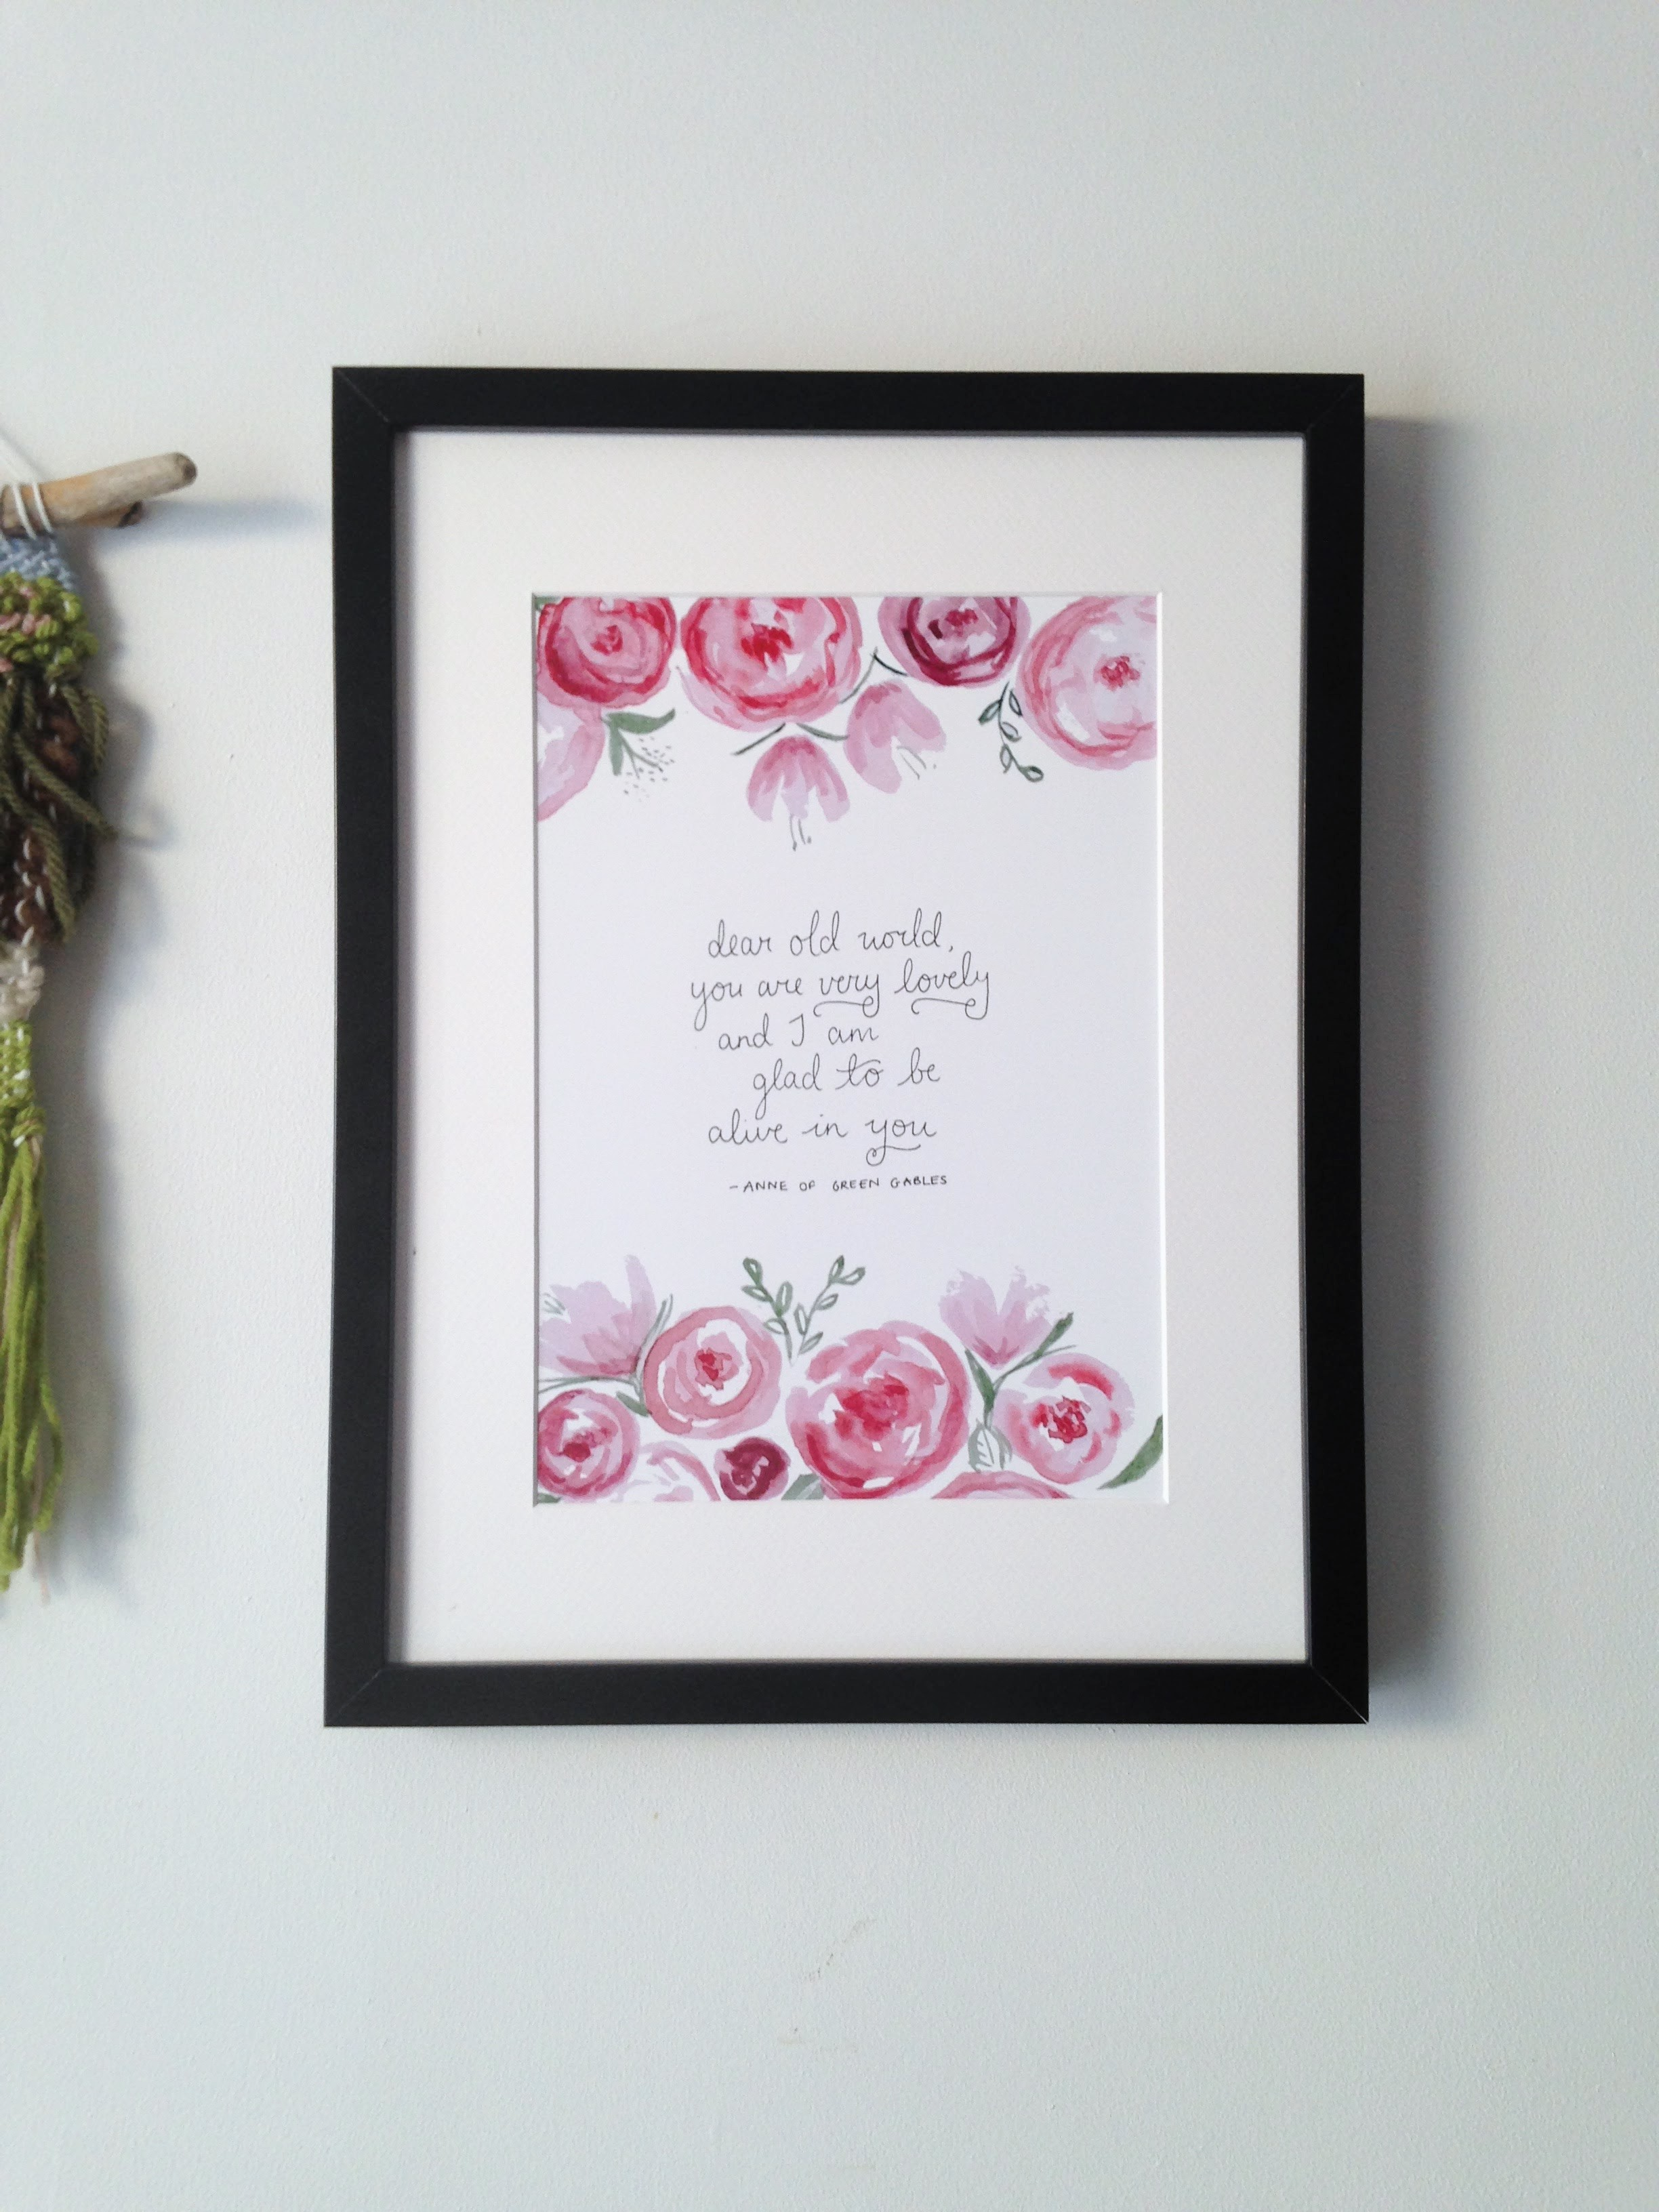 Anne of Green Gables world quote | Remember the beauty of the world through Anne's optimistic eyes with a lovely handlettered print